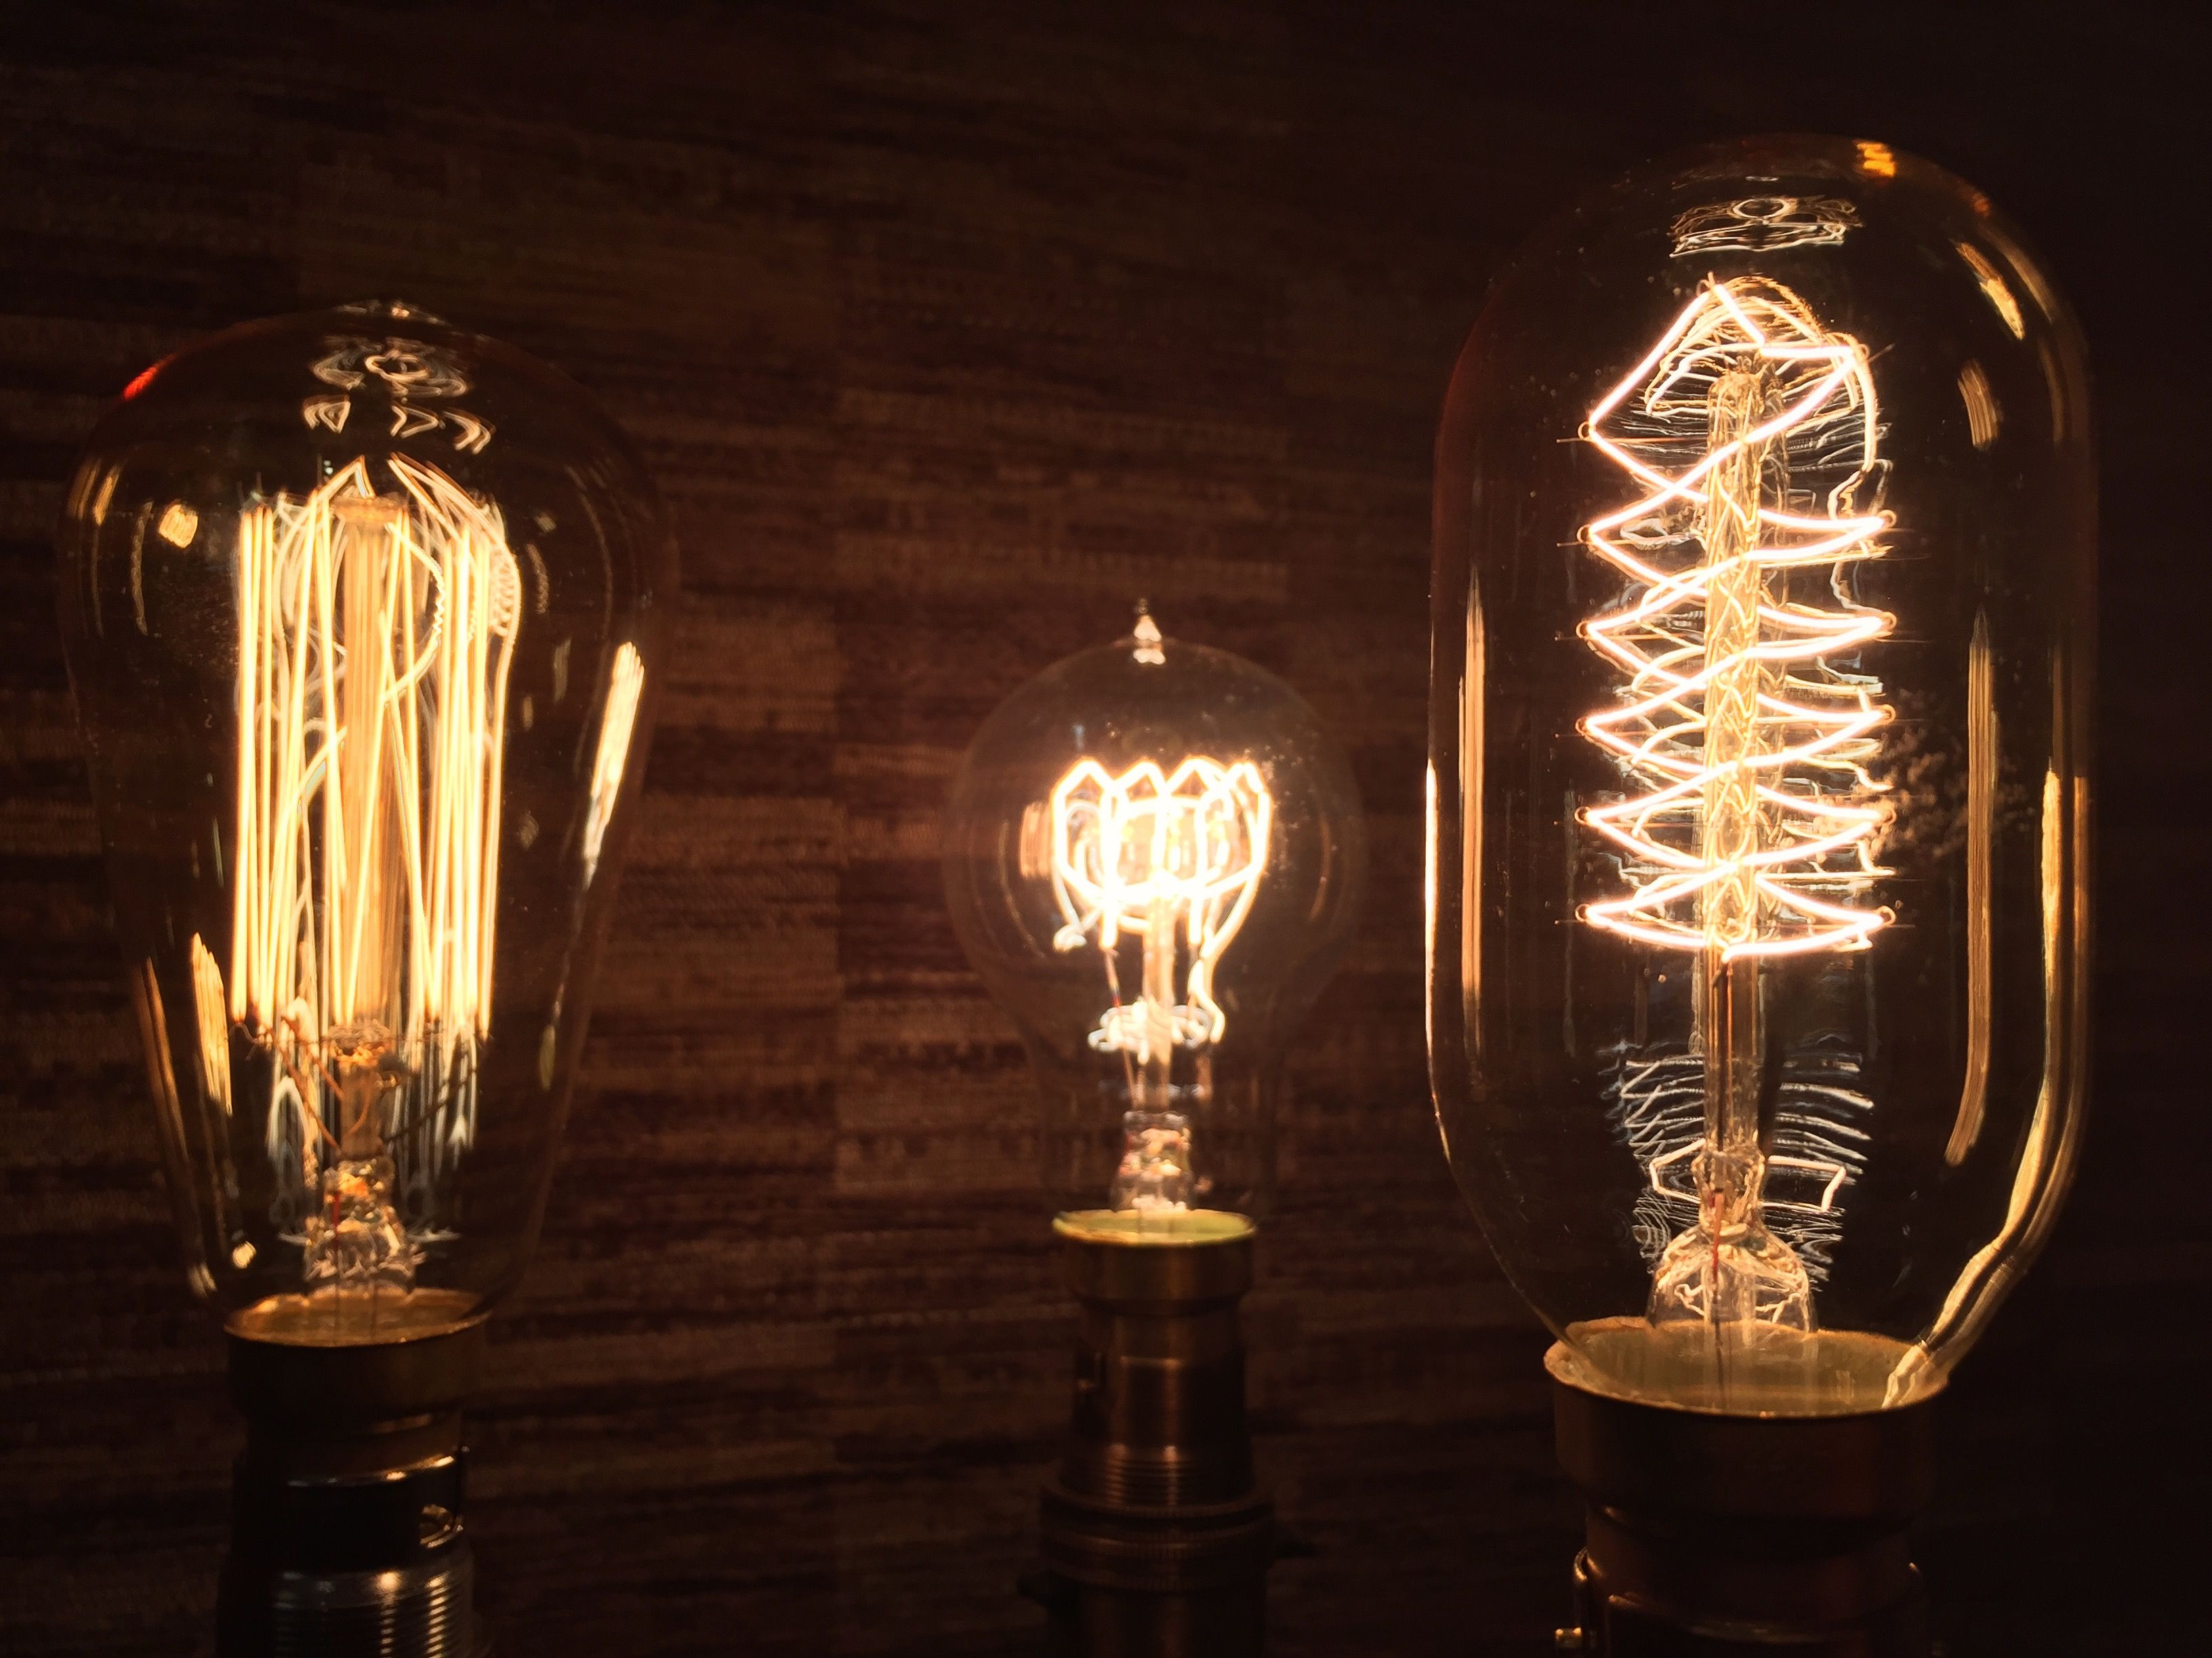 Edison Bulbs For Lamp Project! #Edison #bulb #filament #warm #glow